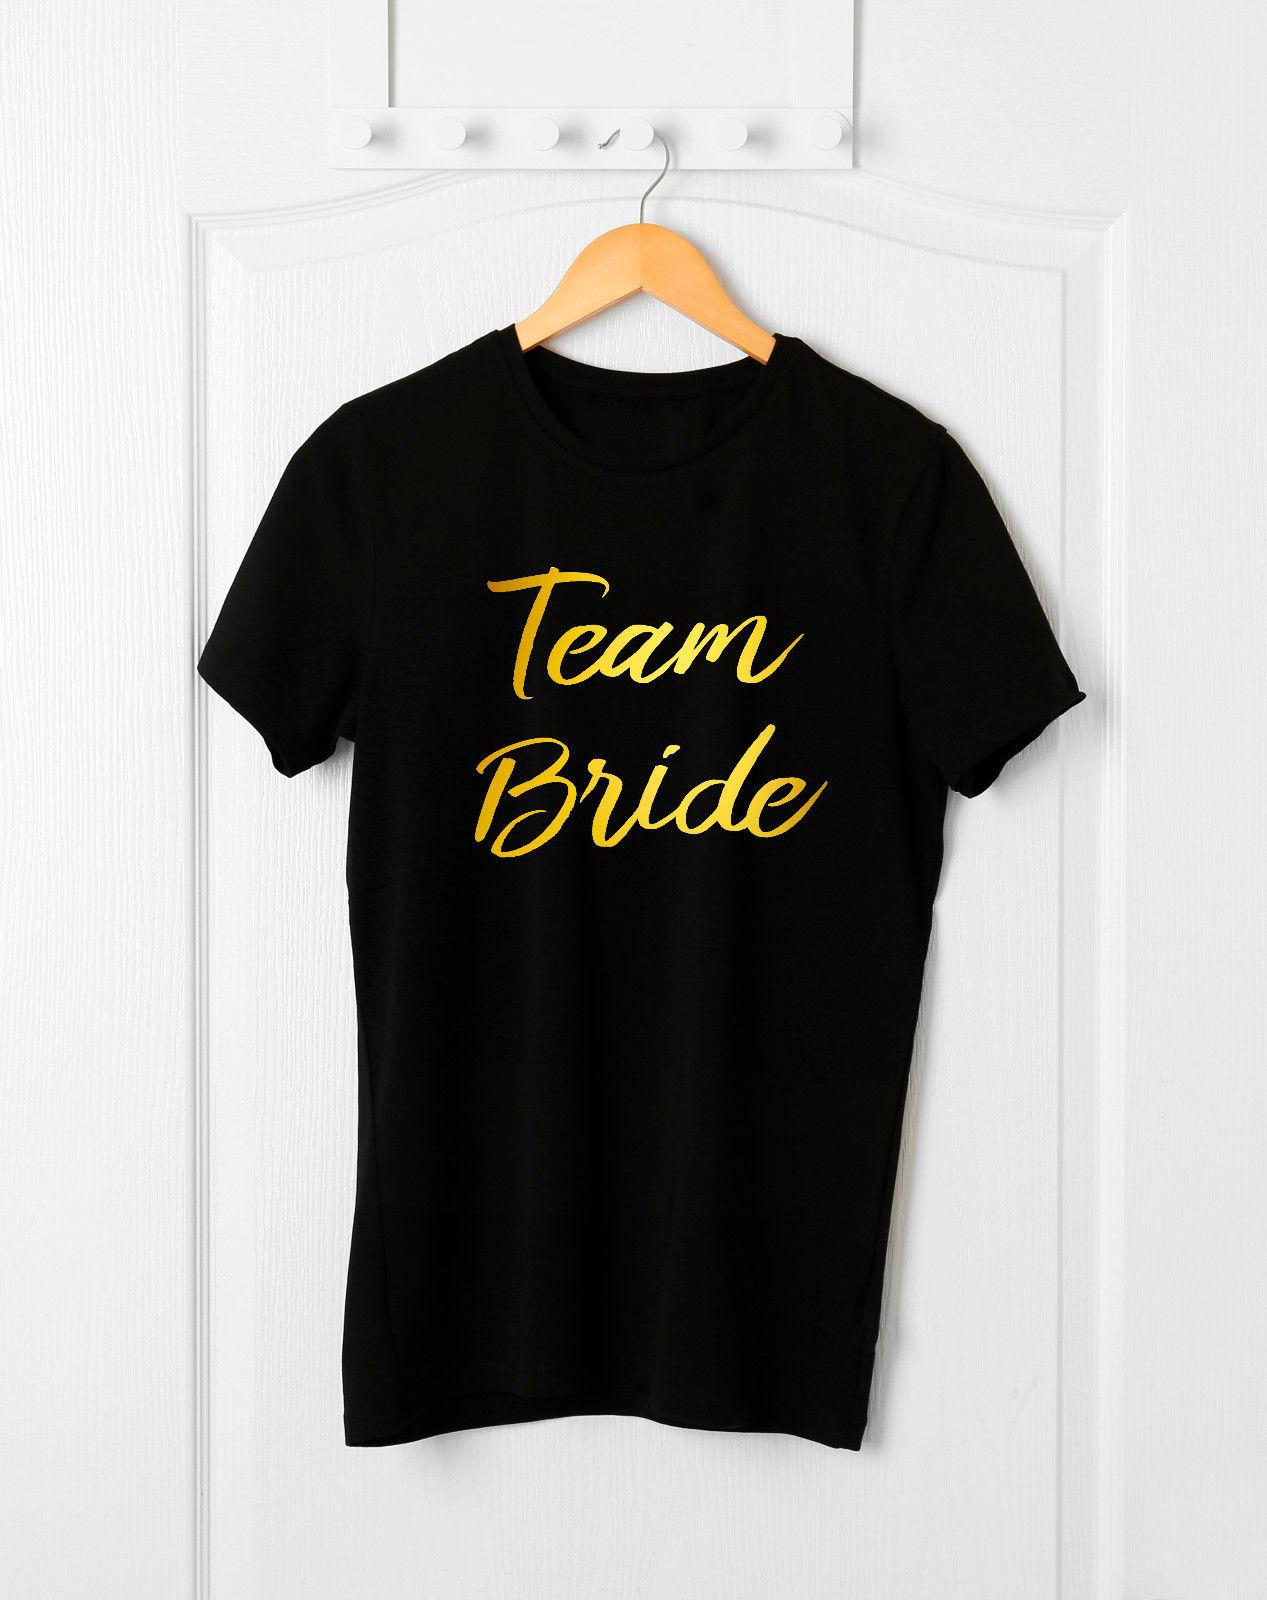 e8a16bea5e Team Bride T-Shirt,Hen Party T-Shirt,Engagement Gifts,Wedding  Party,Bridesmaid Funny free shipping Unisex